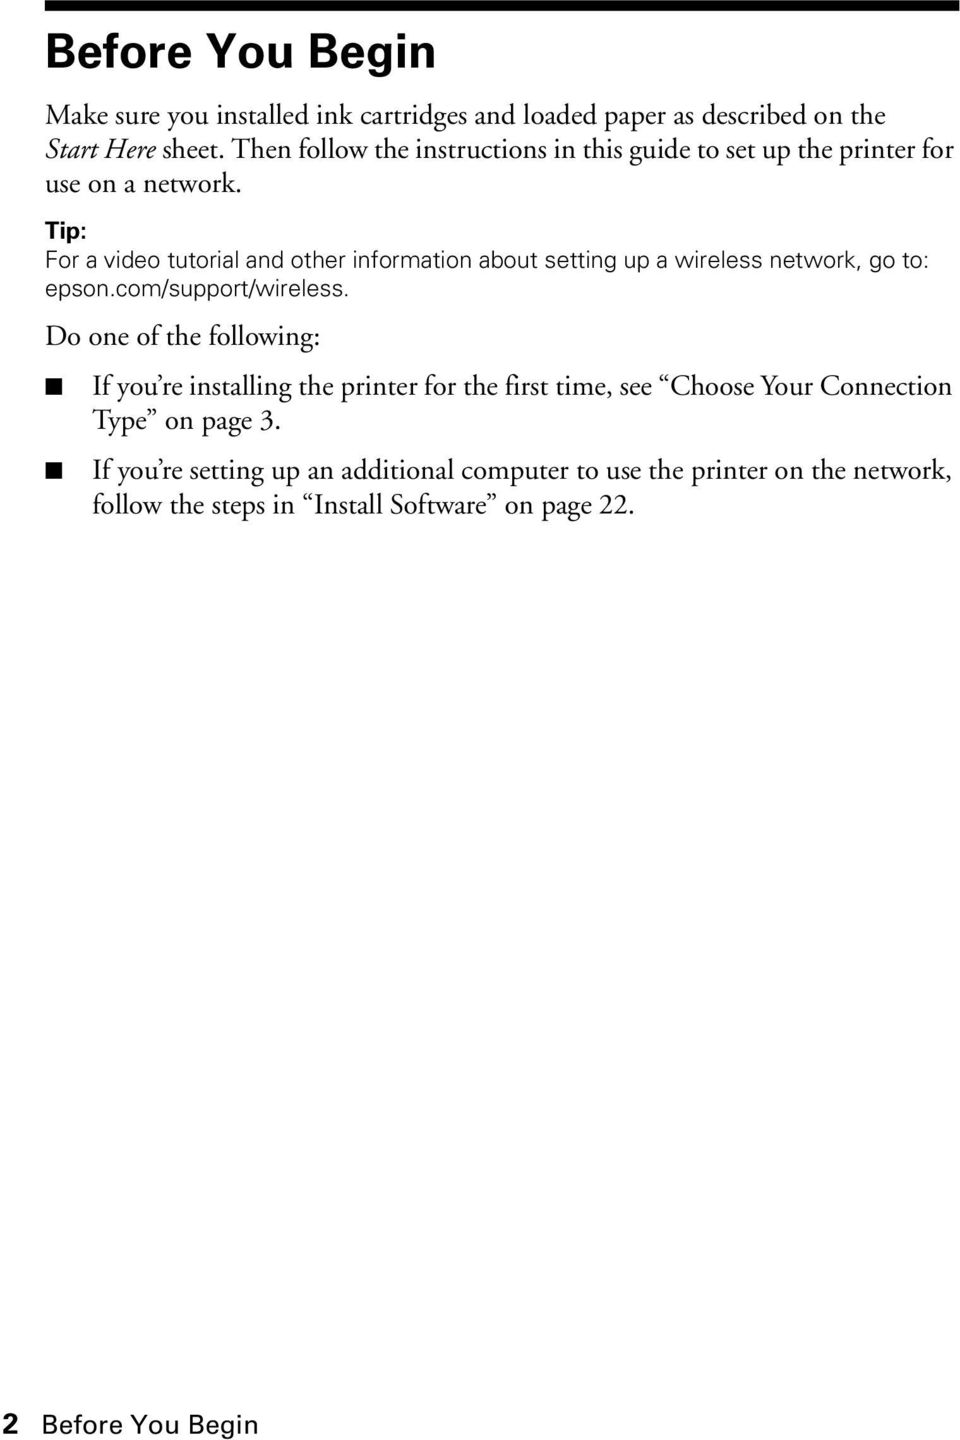 Tip: For a video tutorial and other information about setting up a wireless network, go to: epson.com/support/wireless.